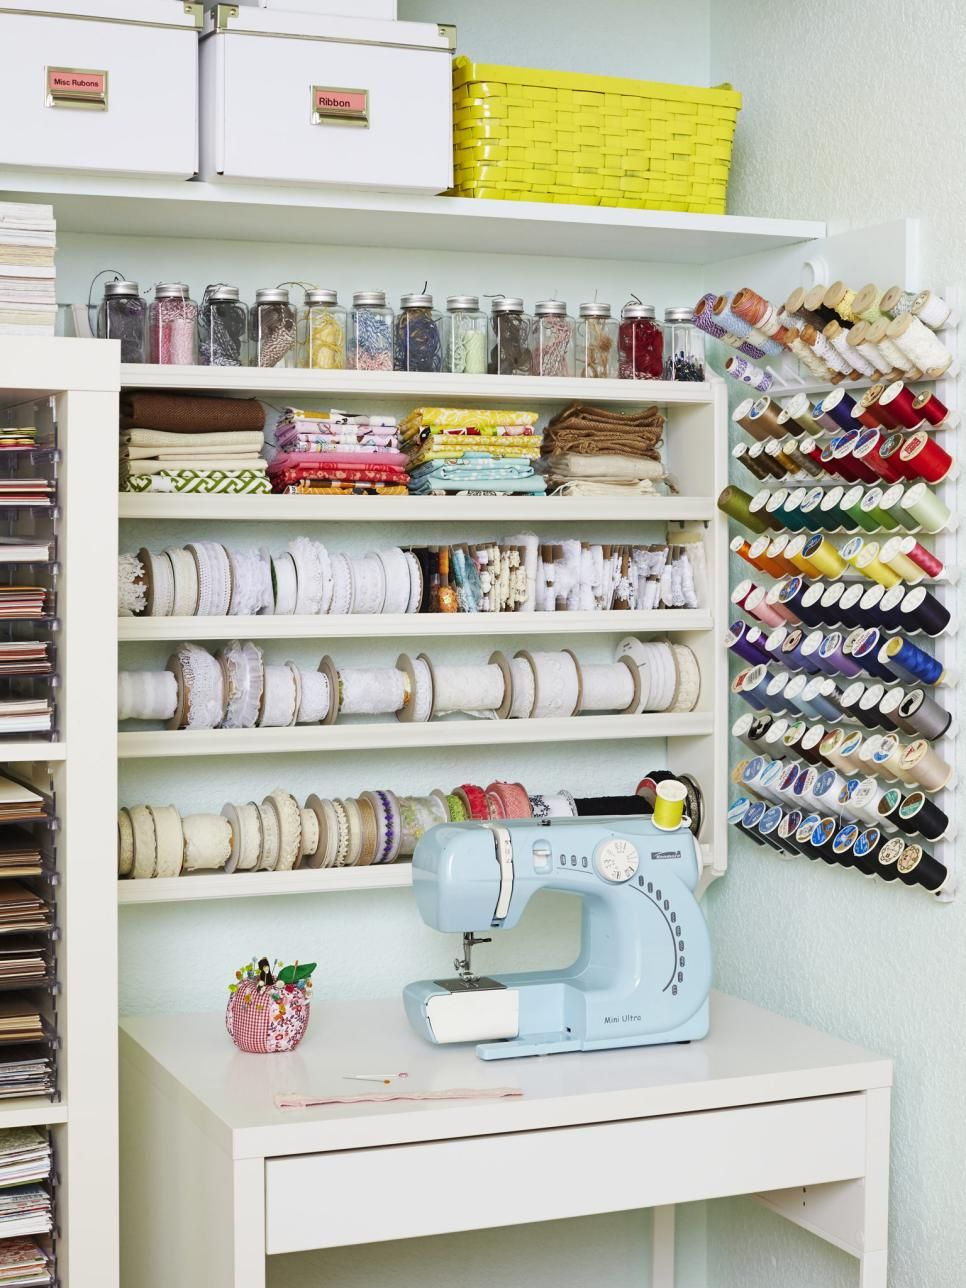 DIYNetwork.com shares ideas to help you keep your craft or sewing room organized and looking beautiful.